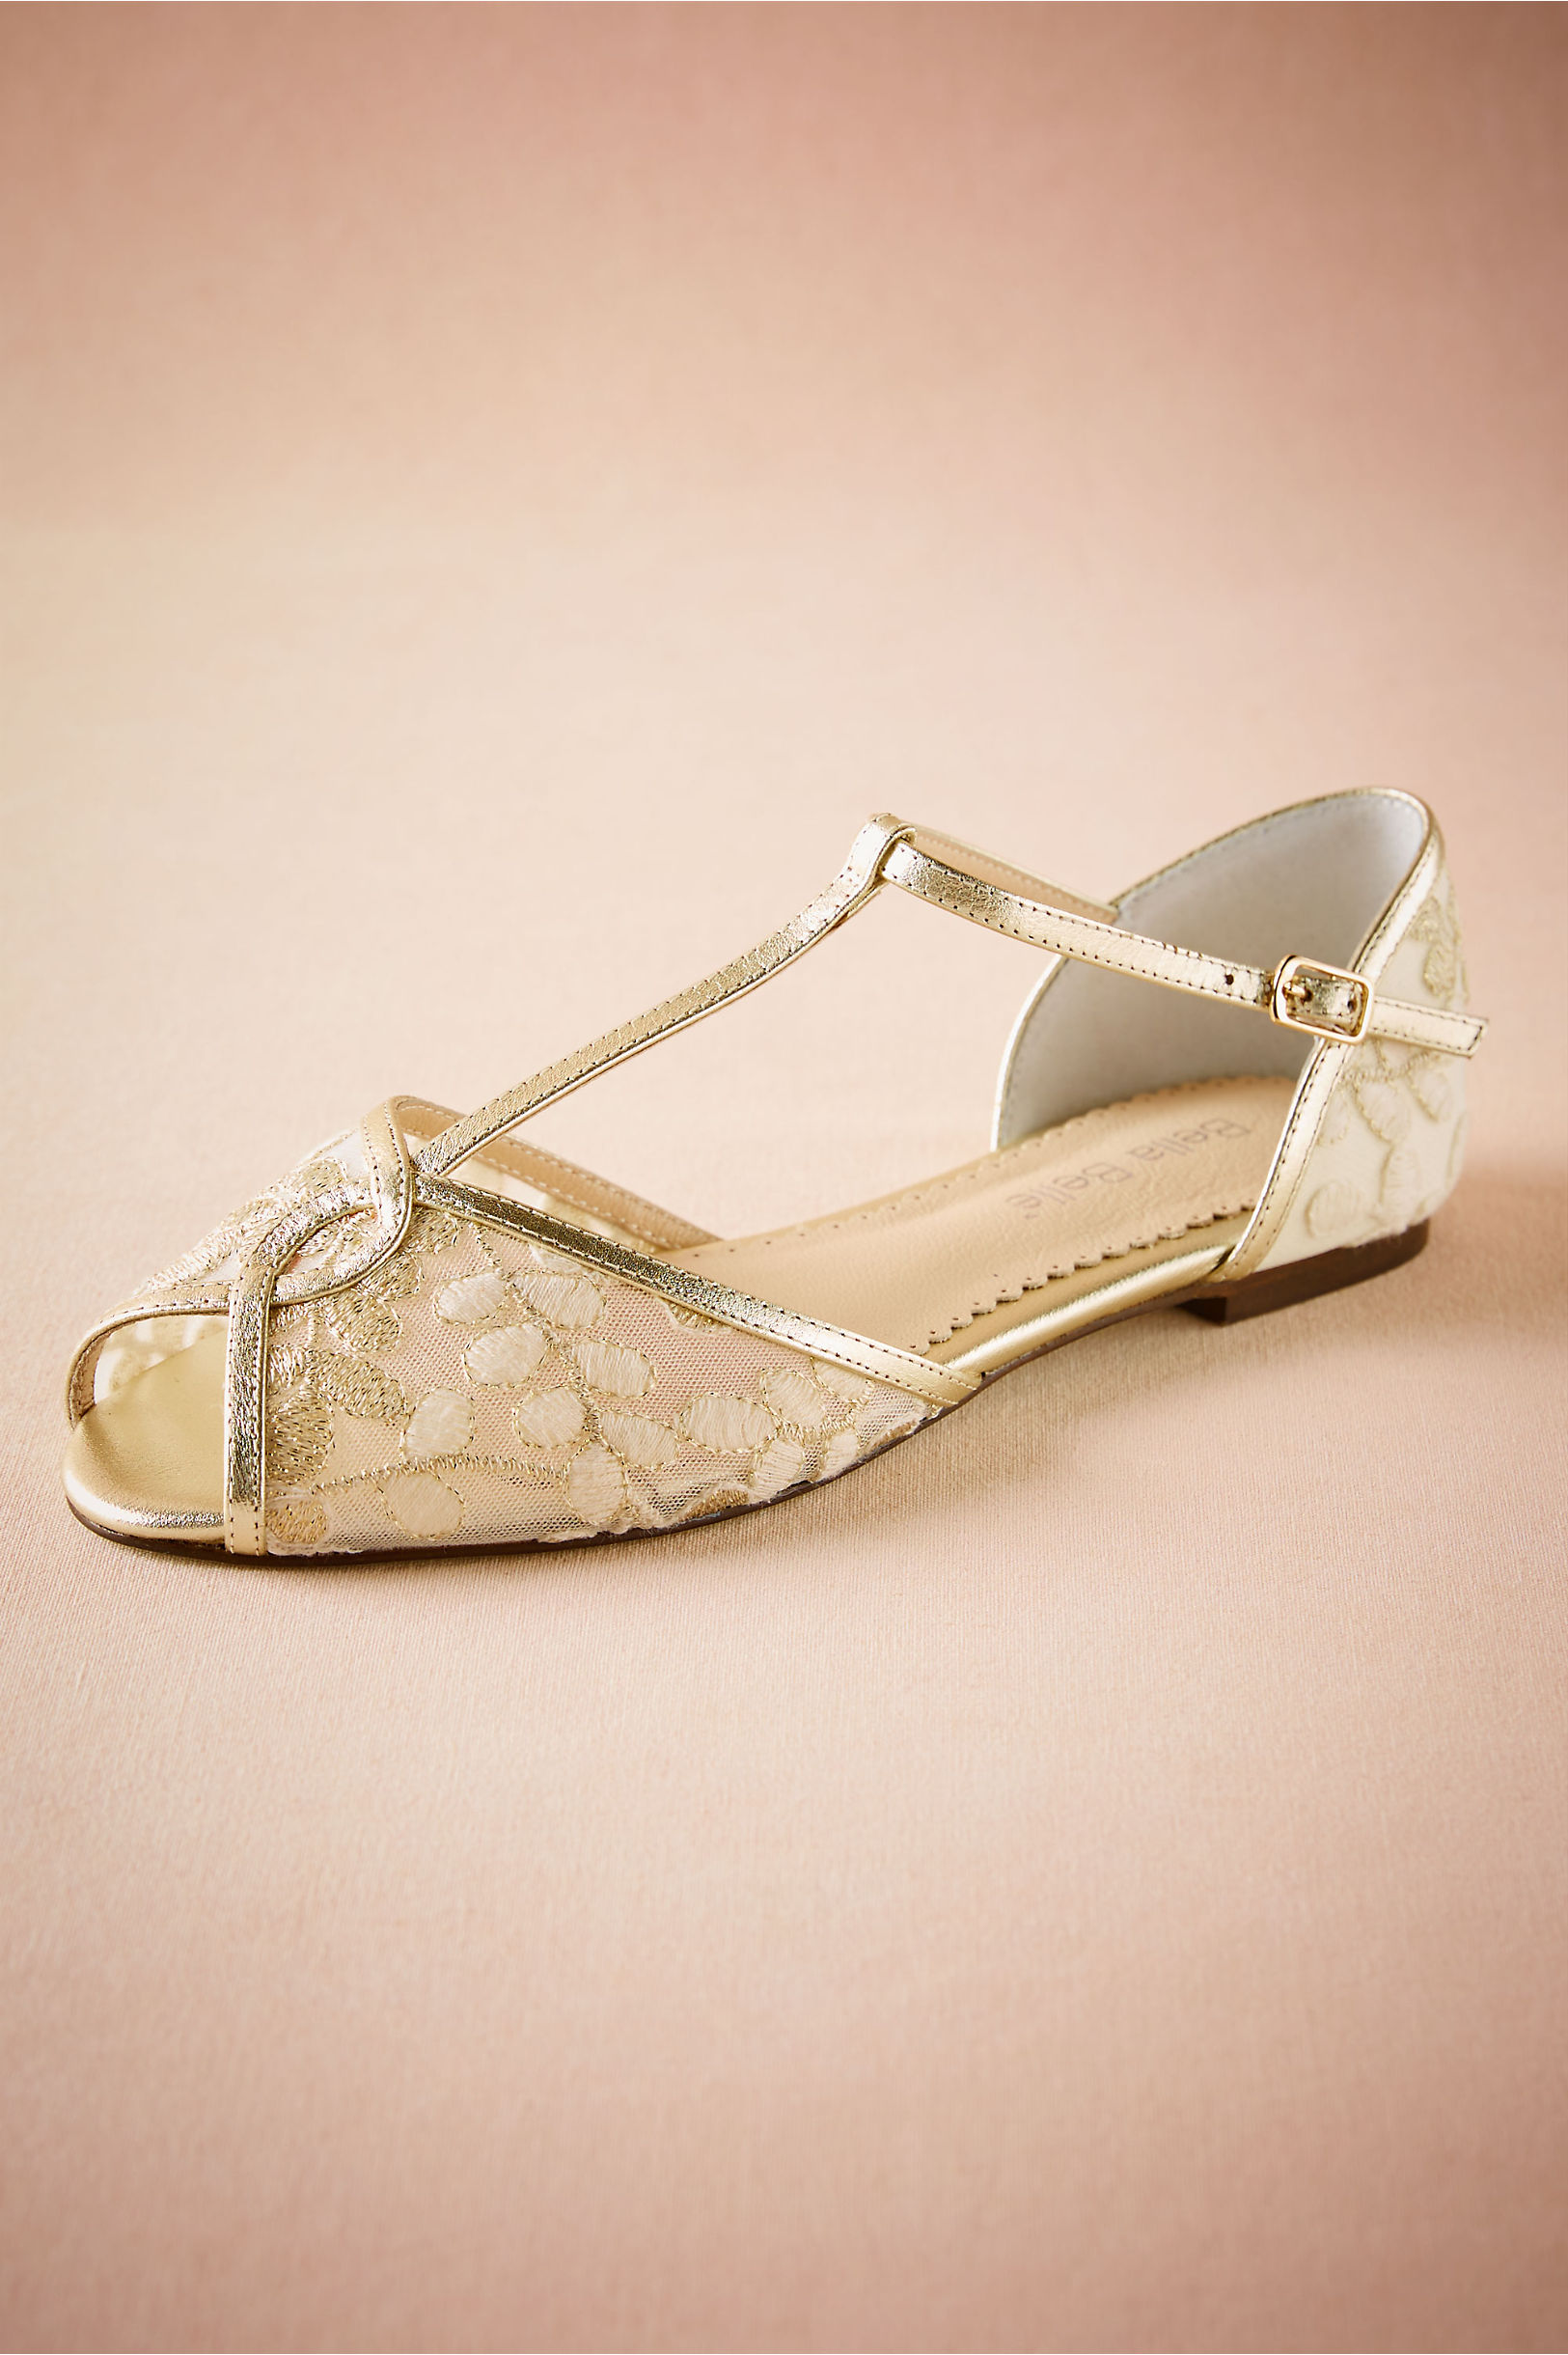 Vintage Wedding Shoes, Flats, Boots, Heels Maisie Embroidered T-Strap Flats $190.00 AT vintagedancer.com